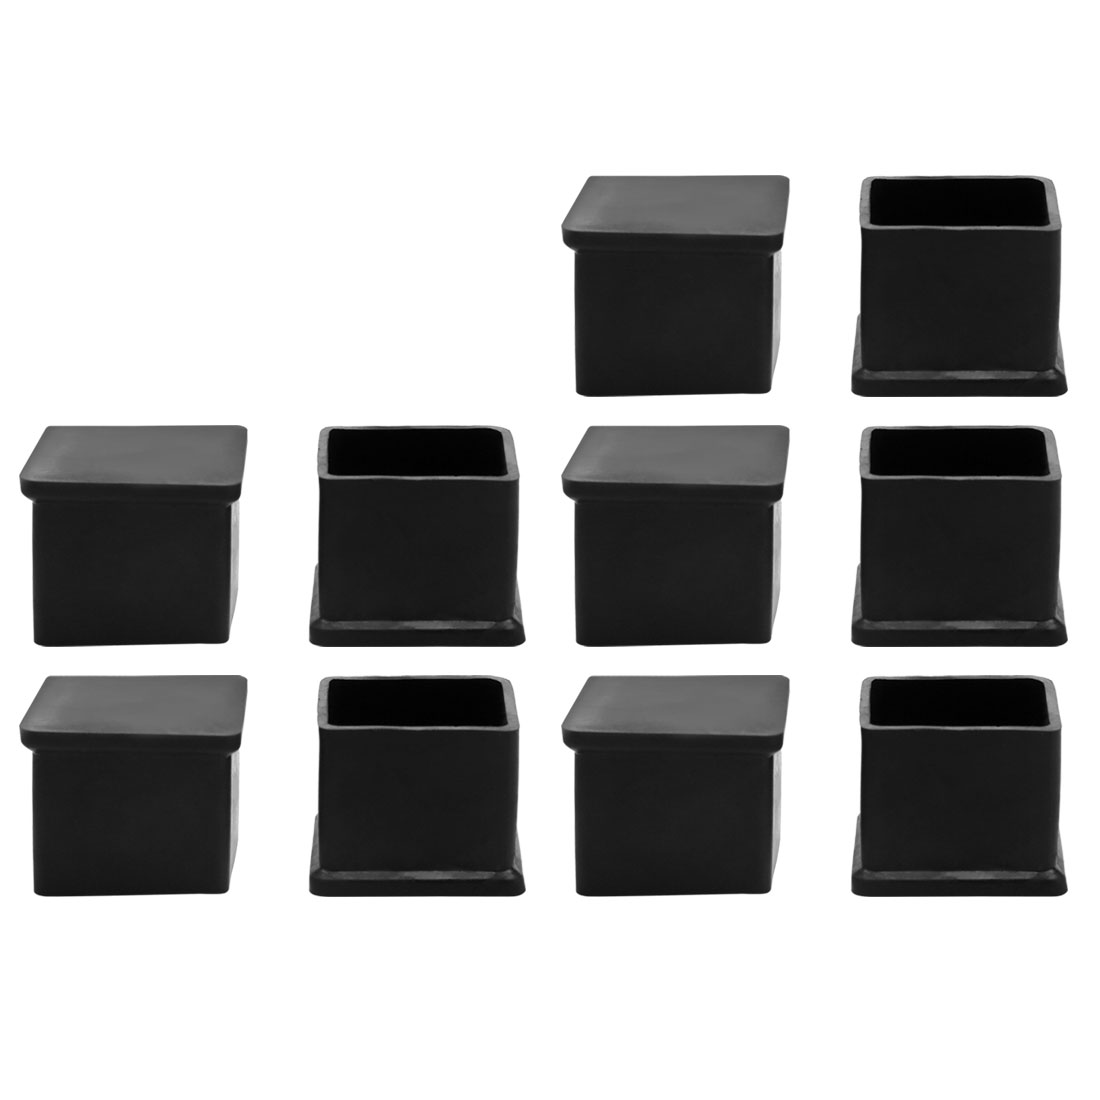 10pcs Rubber Square Shape Furniture Table Chair Foot Leg Cap Protective Tip Pad Cover